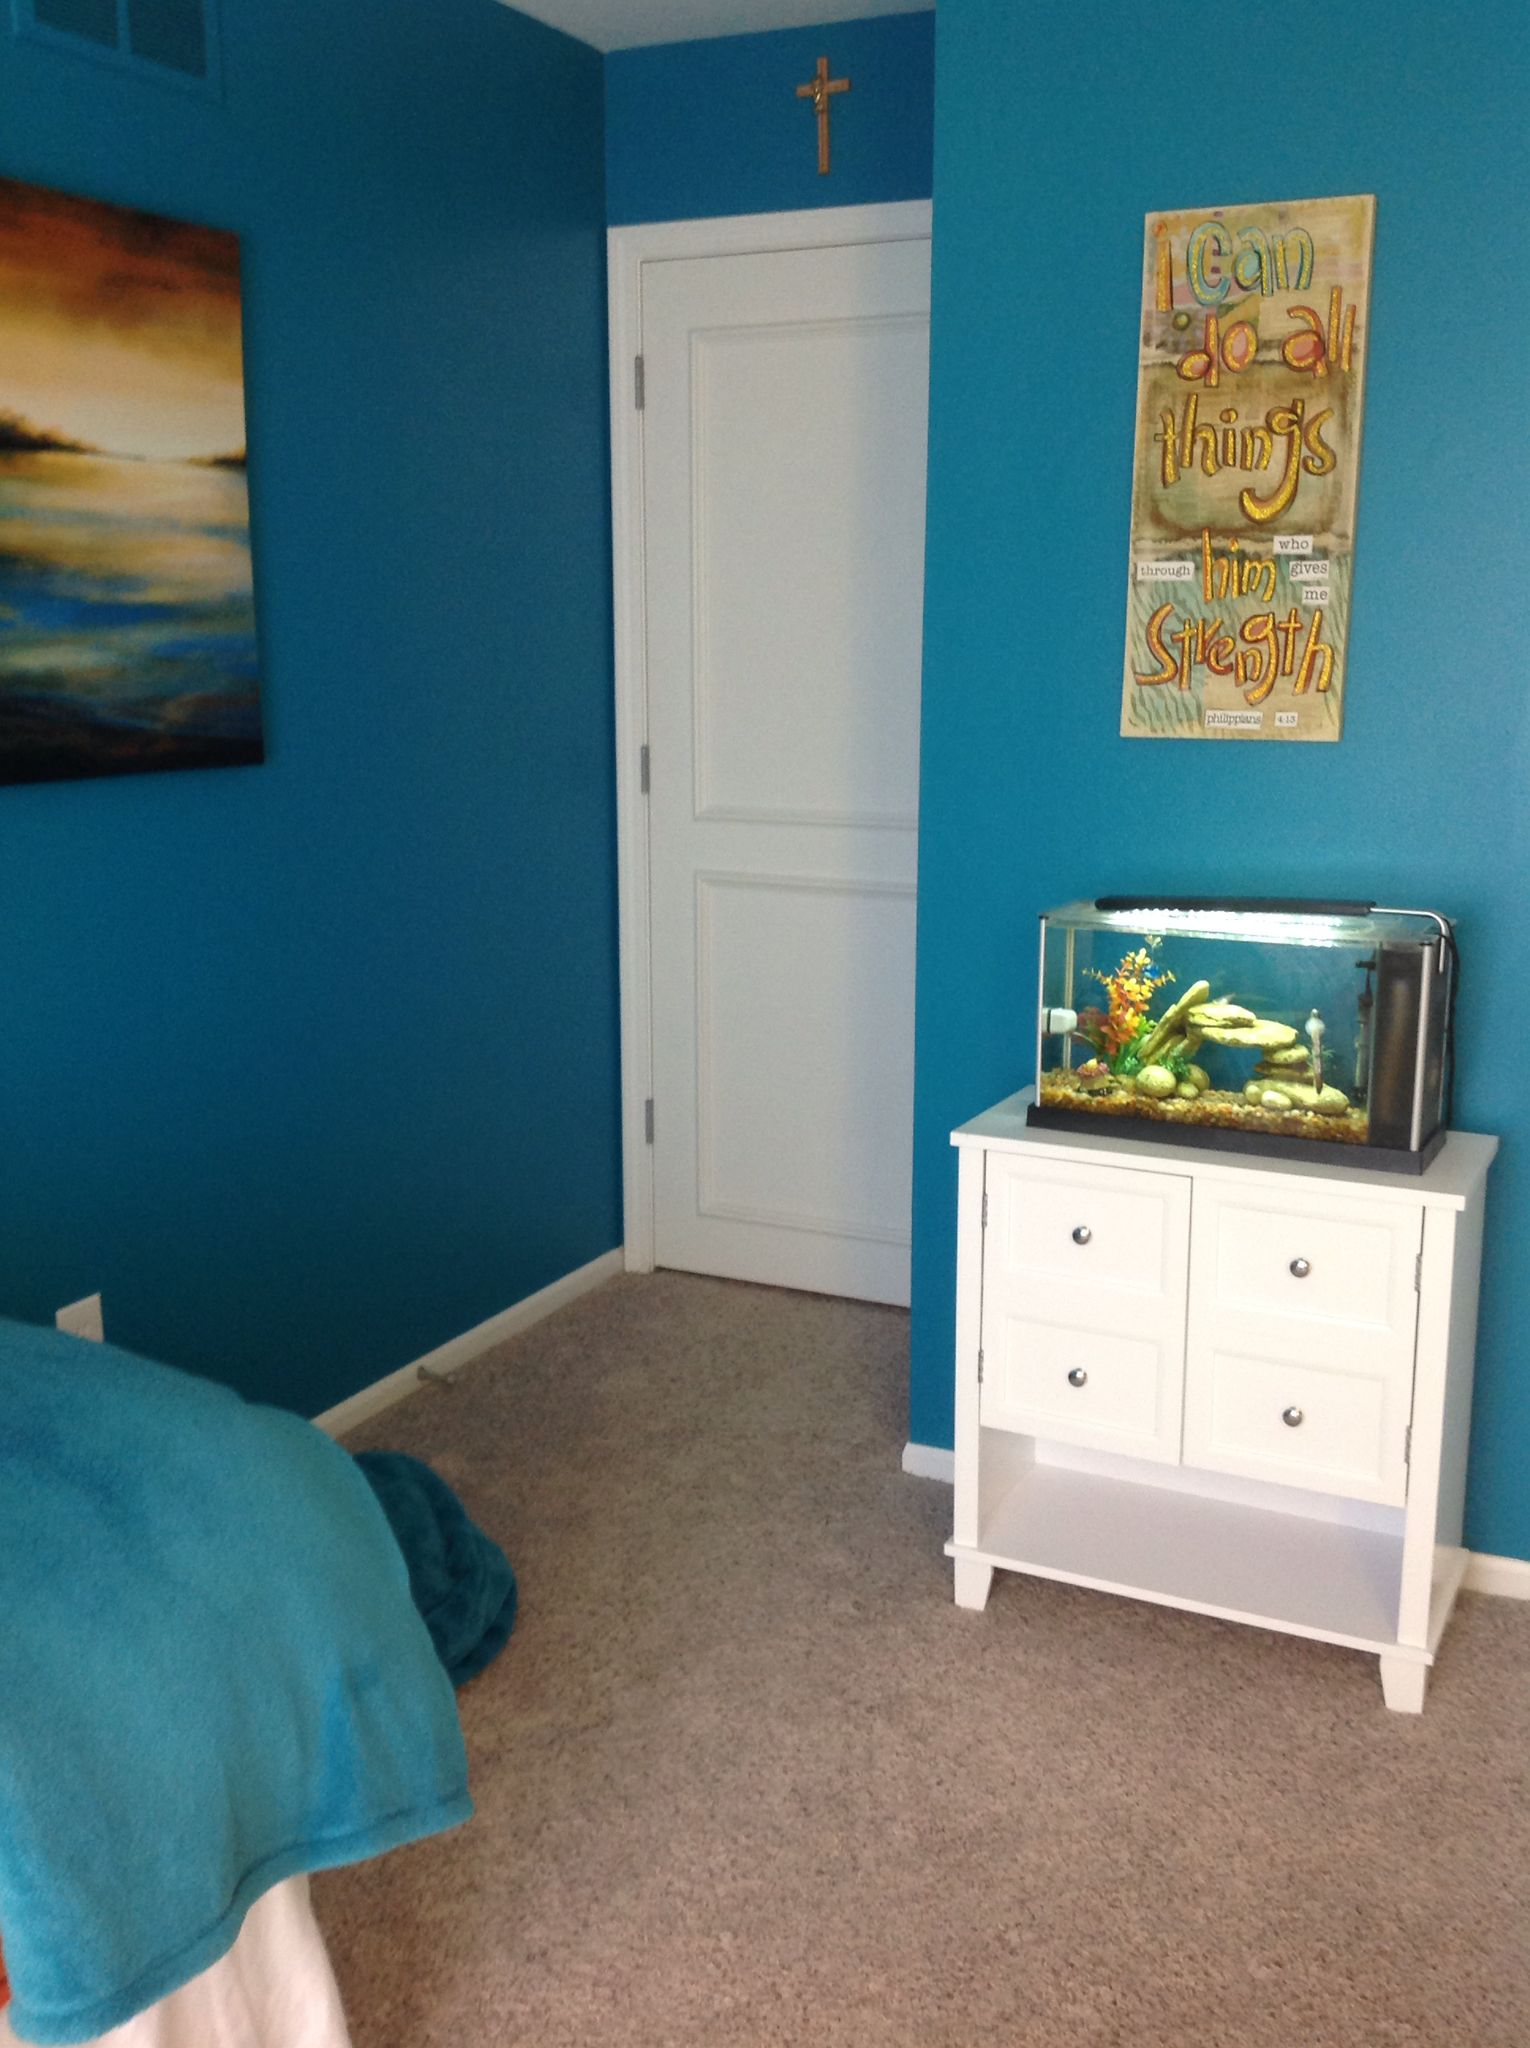 aquarium think here aquafront hip places room fish tank for tanks no an s home archives bedroom it if your in unusual again